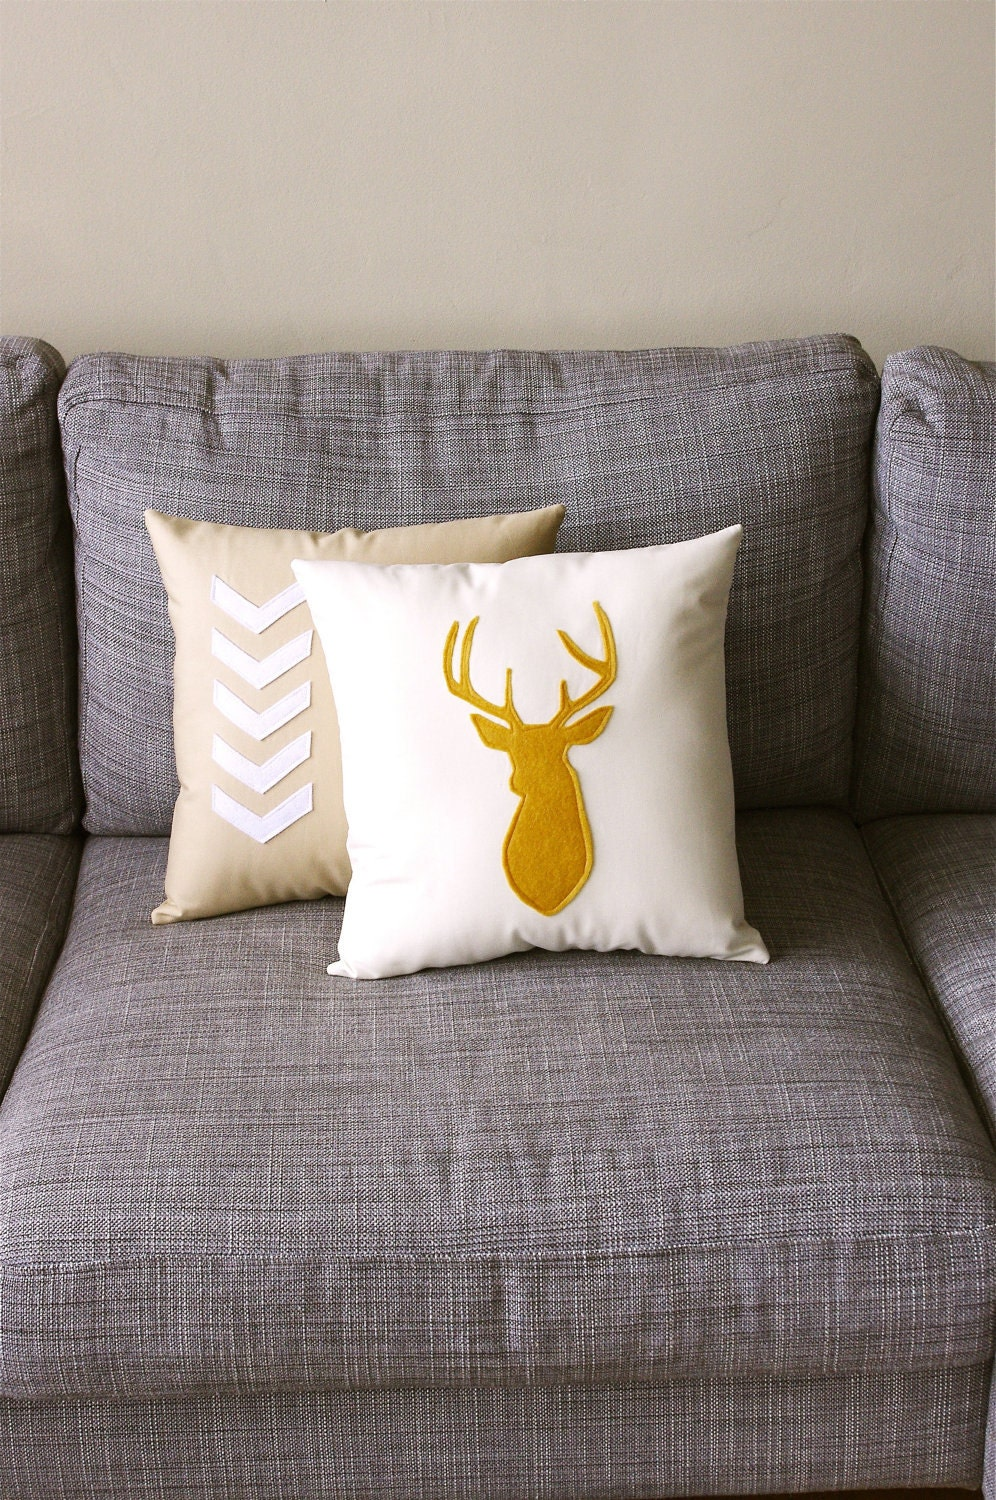 Mustard & Linen Decorative Deer Pillow  - 14X14 - yellow and beige - regansbrain